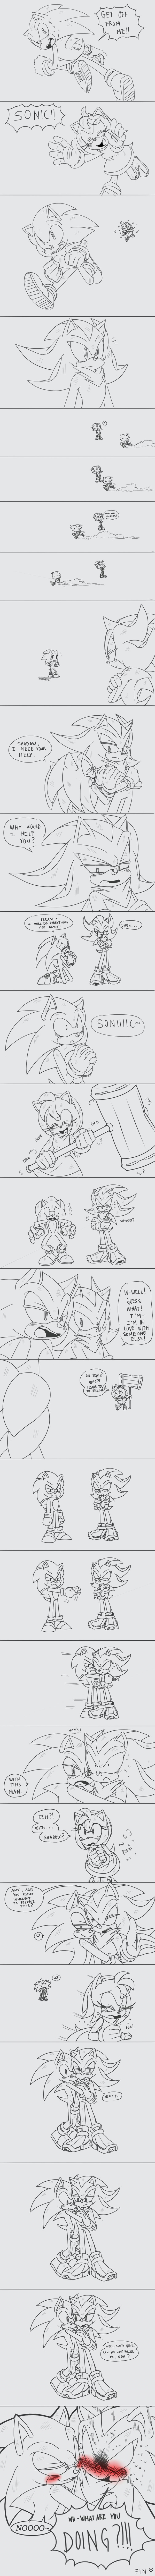 + How to ship Sonic and Shadow + by ClassicMariposAzul on DeviantArt